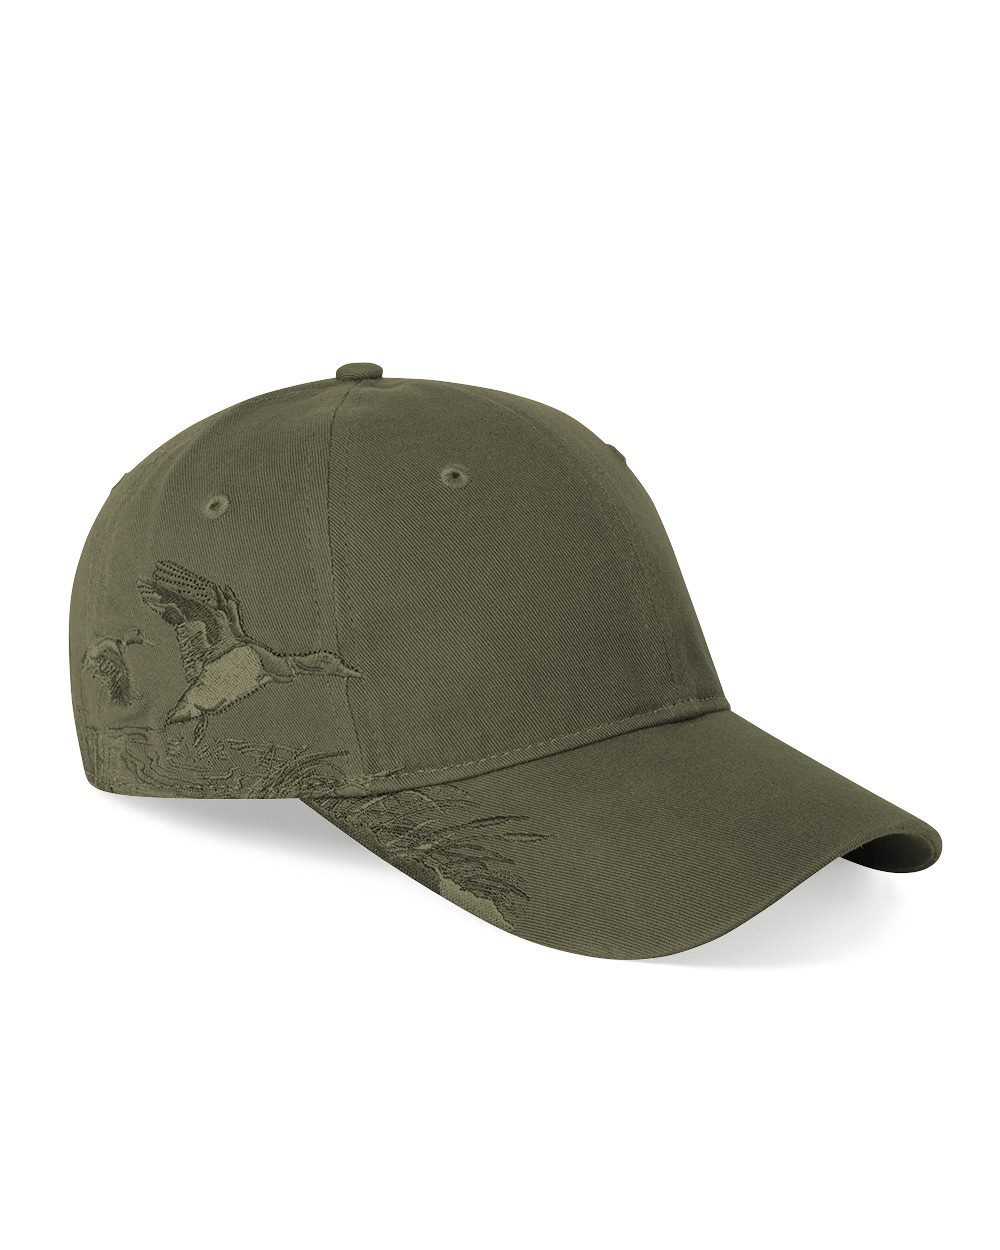 DRI DUCK 3332 - Relaxed Fit Mallard Cap